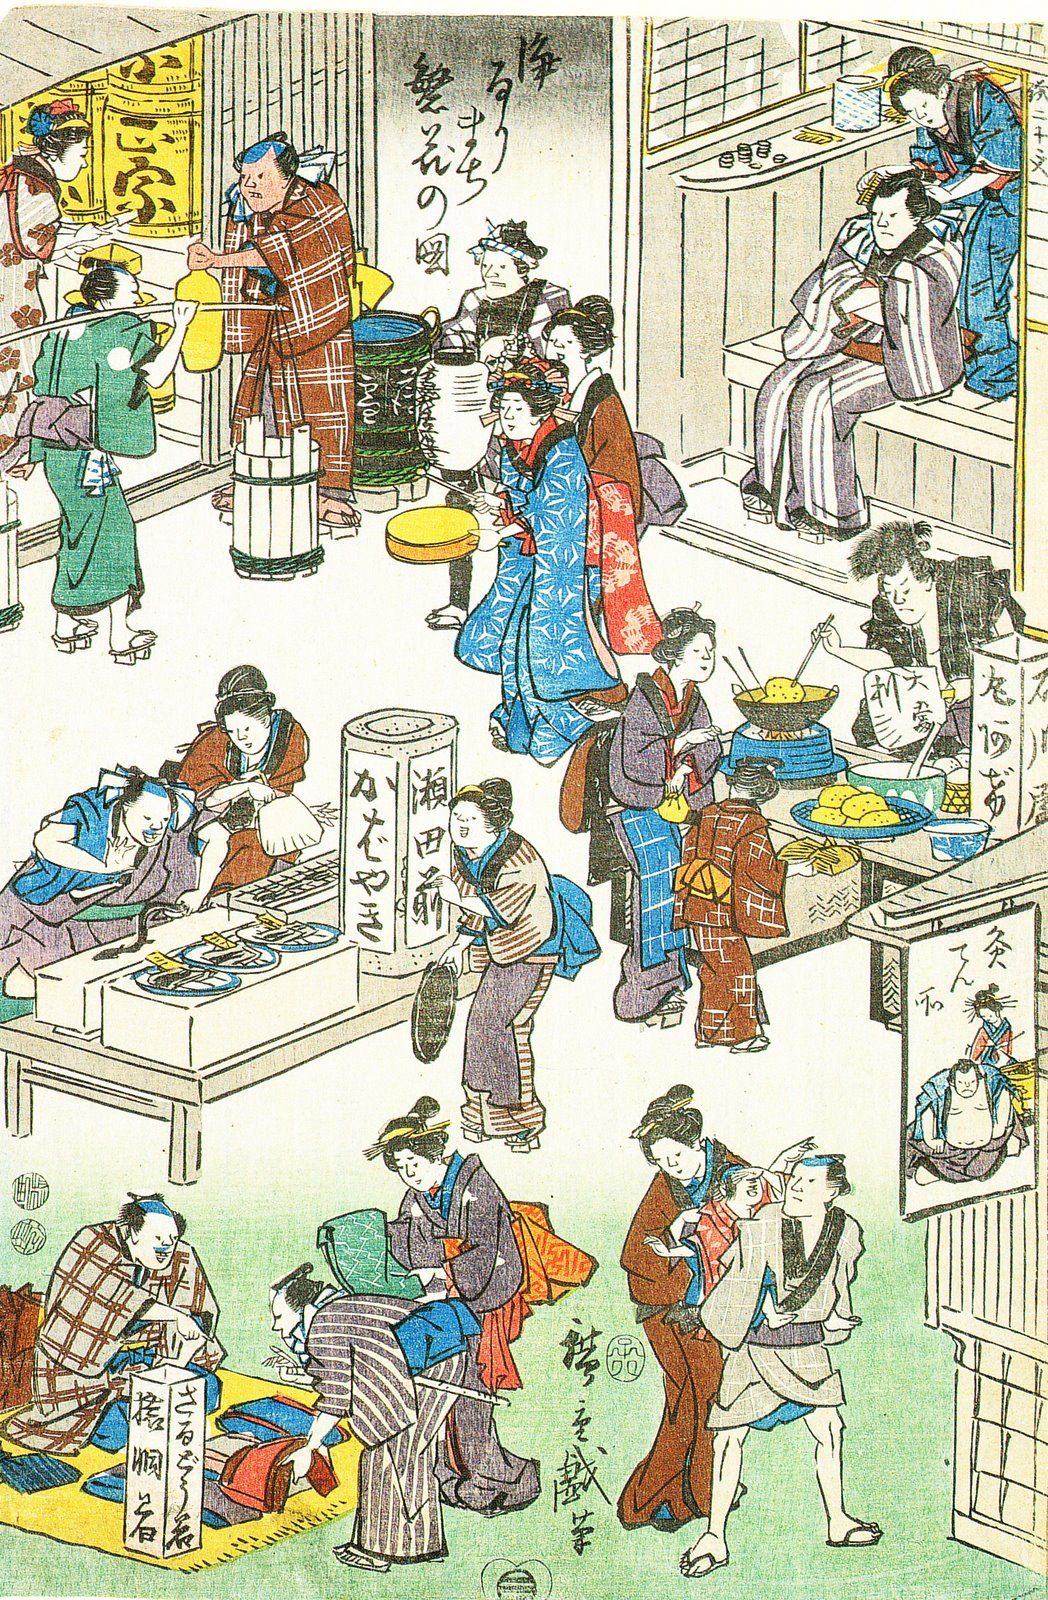 Street vendors appear in various depictions of festivals